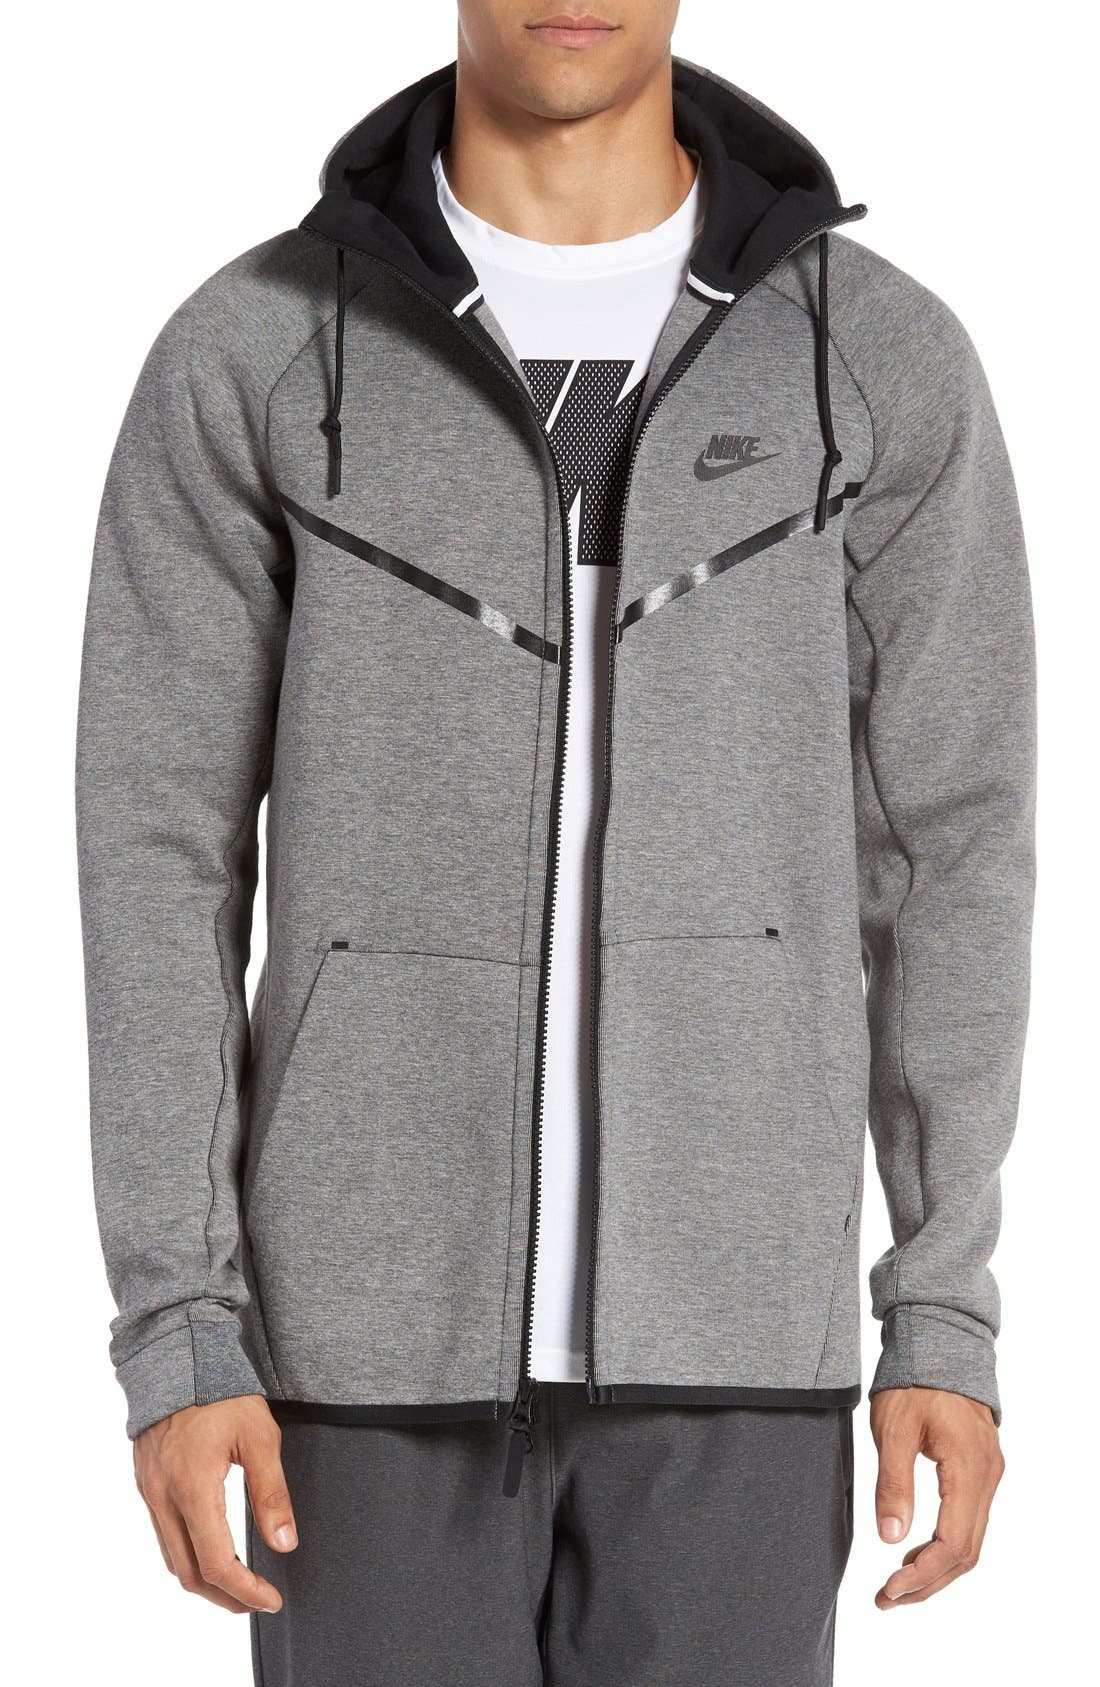 Nike 'Windrunner' Tech Fleece Hoodie